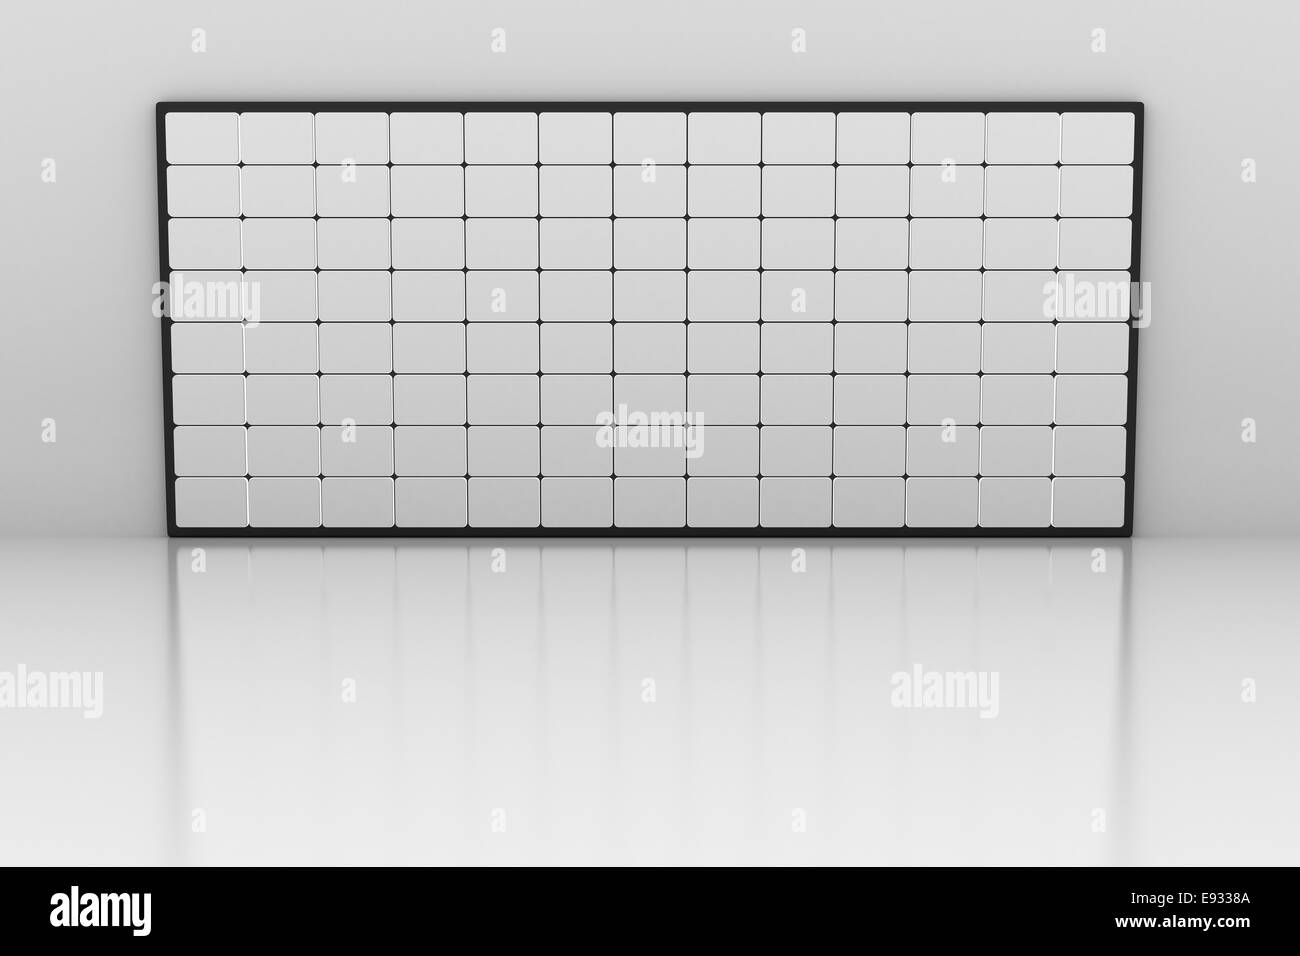 Blank screens - Stock Image